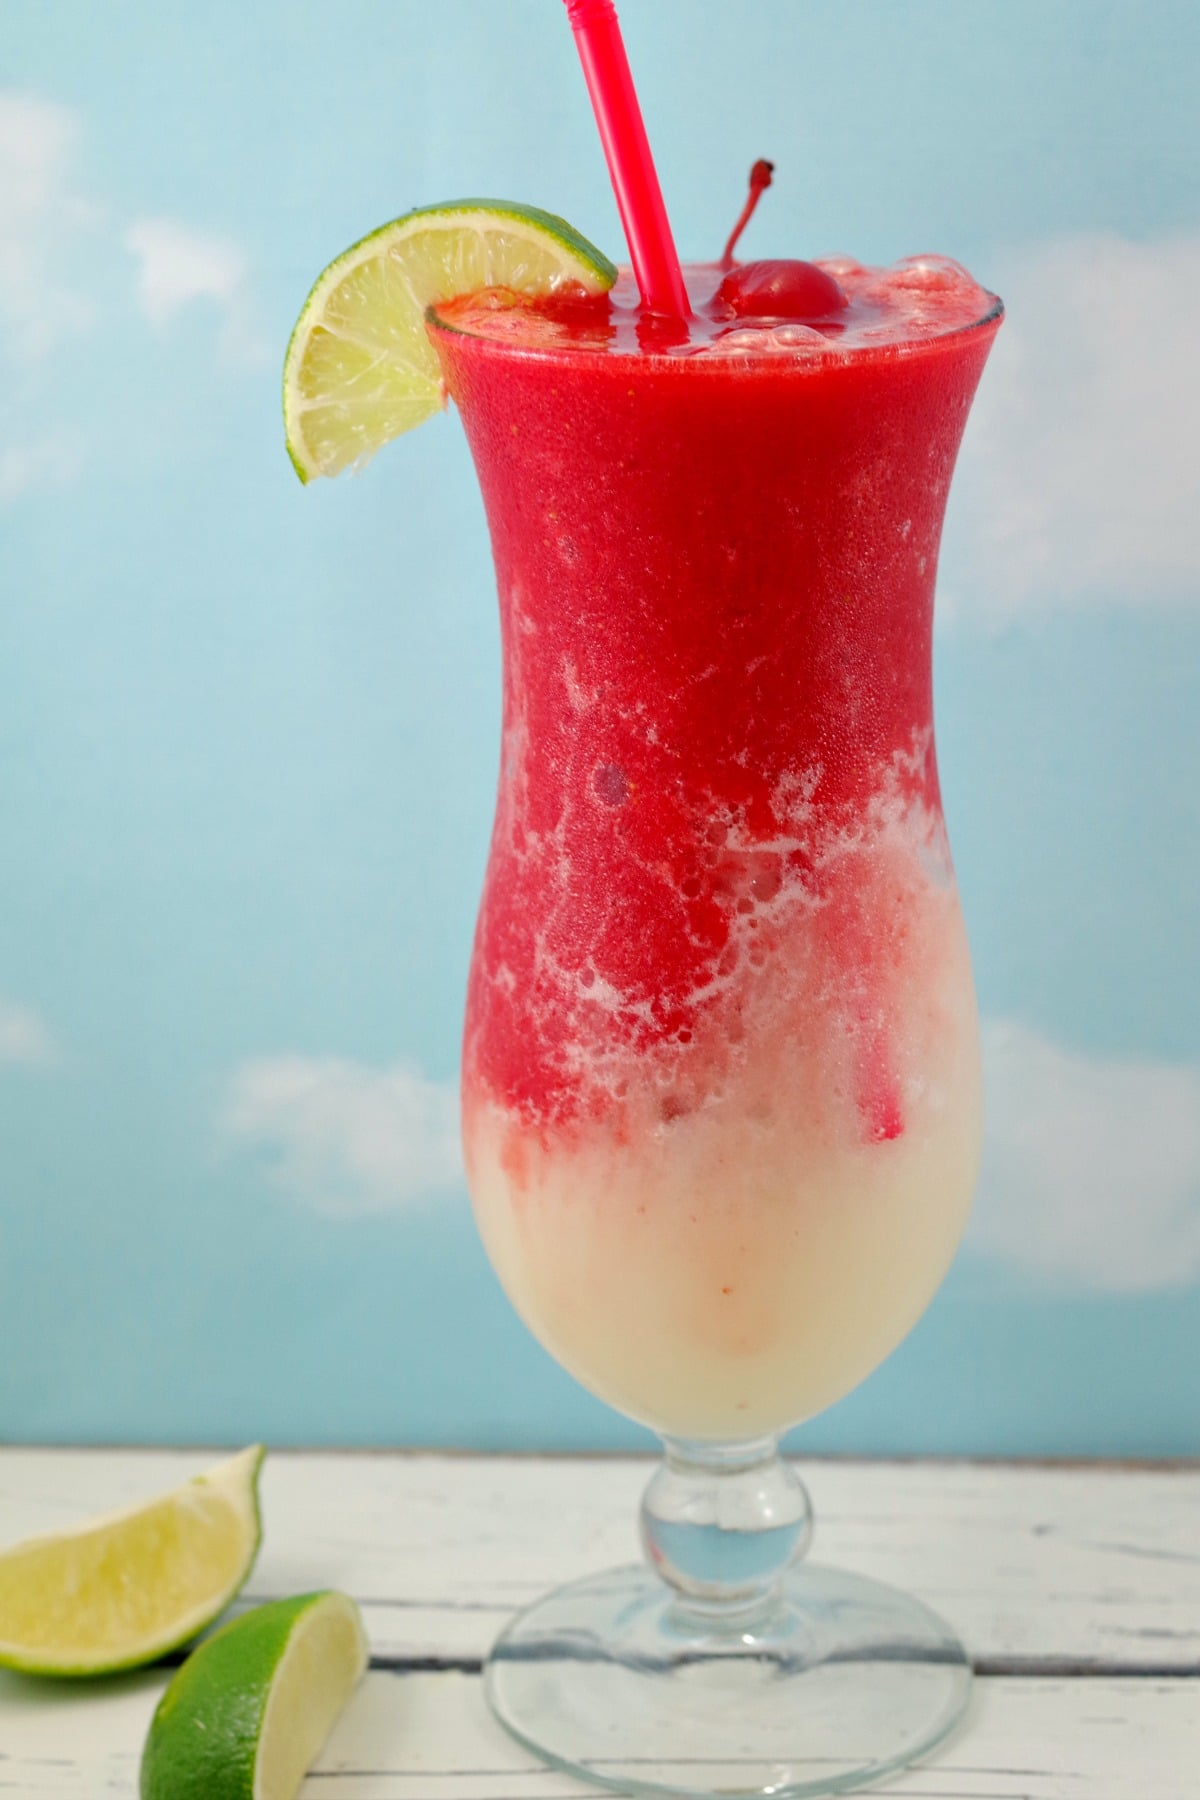 Miami Vice Mocktail with lime and cherry garnish